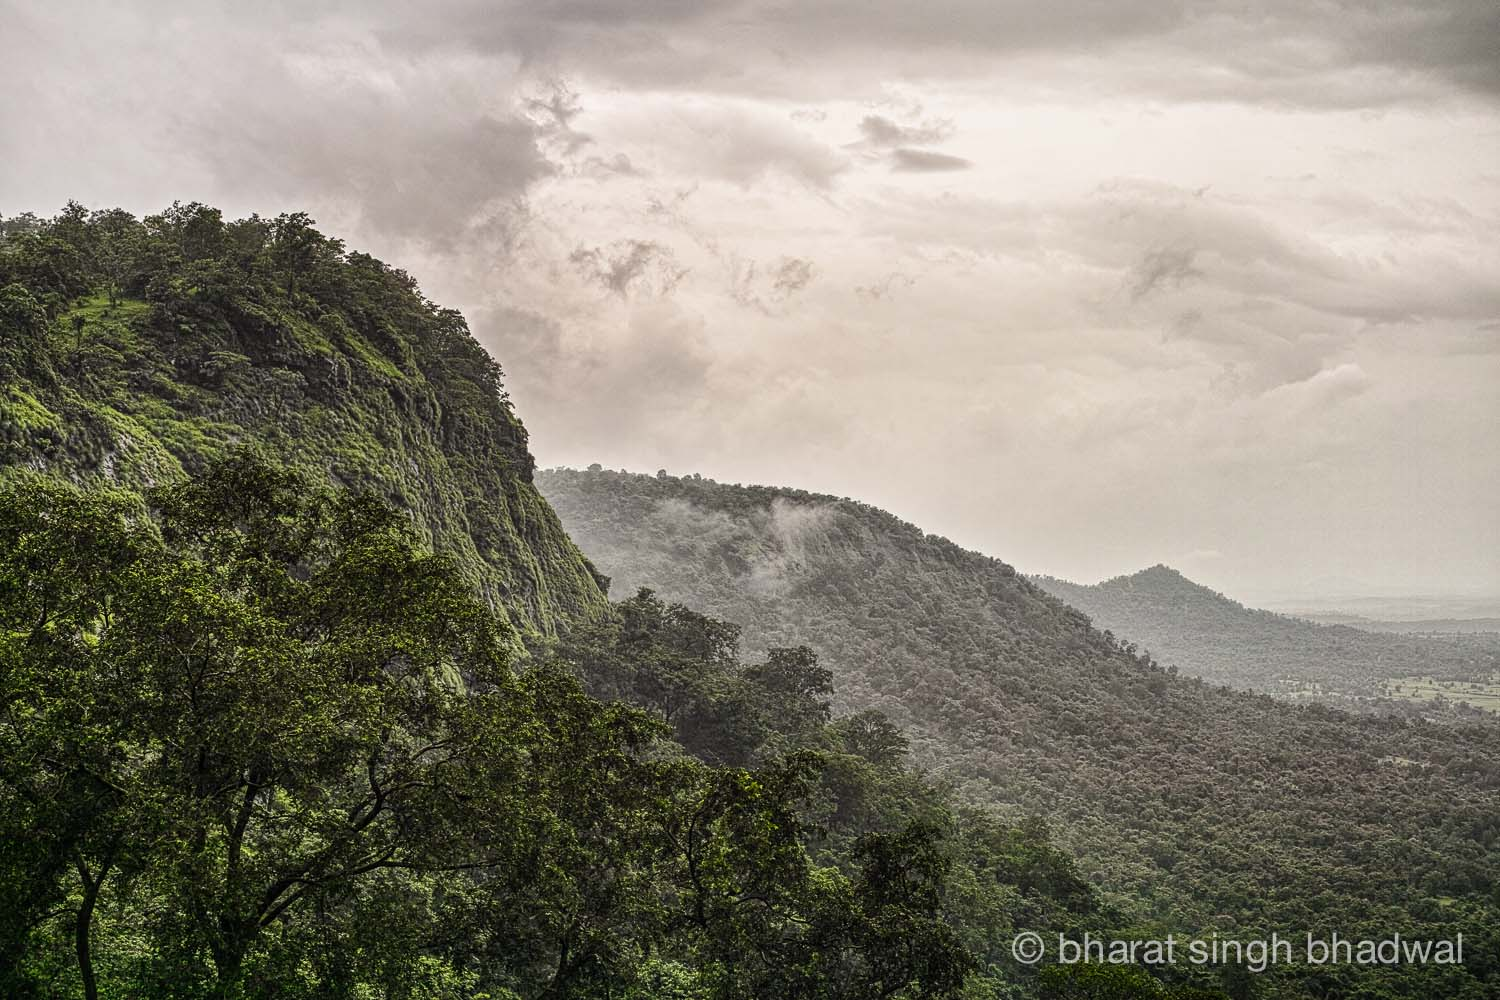 Looking back from the plateau on Ganesh Ghat route